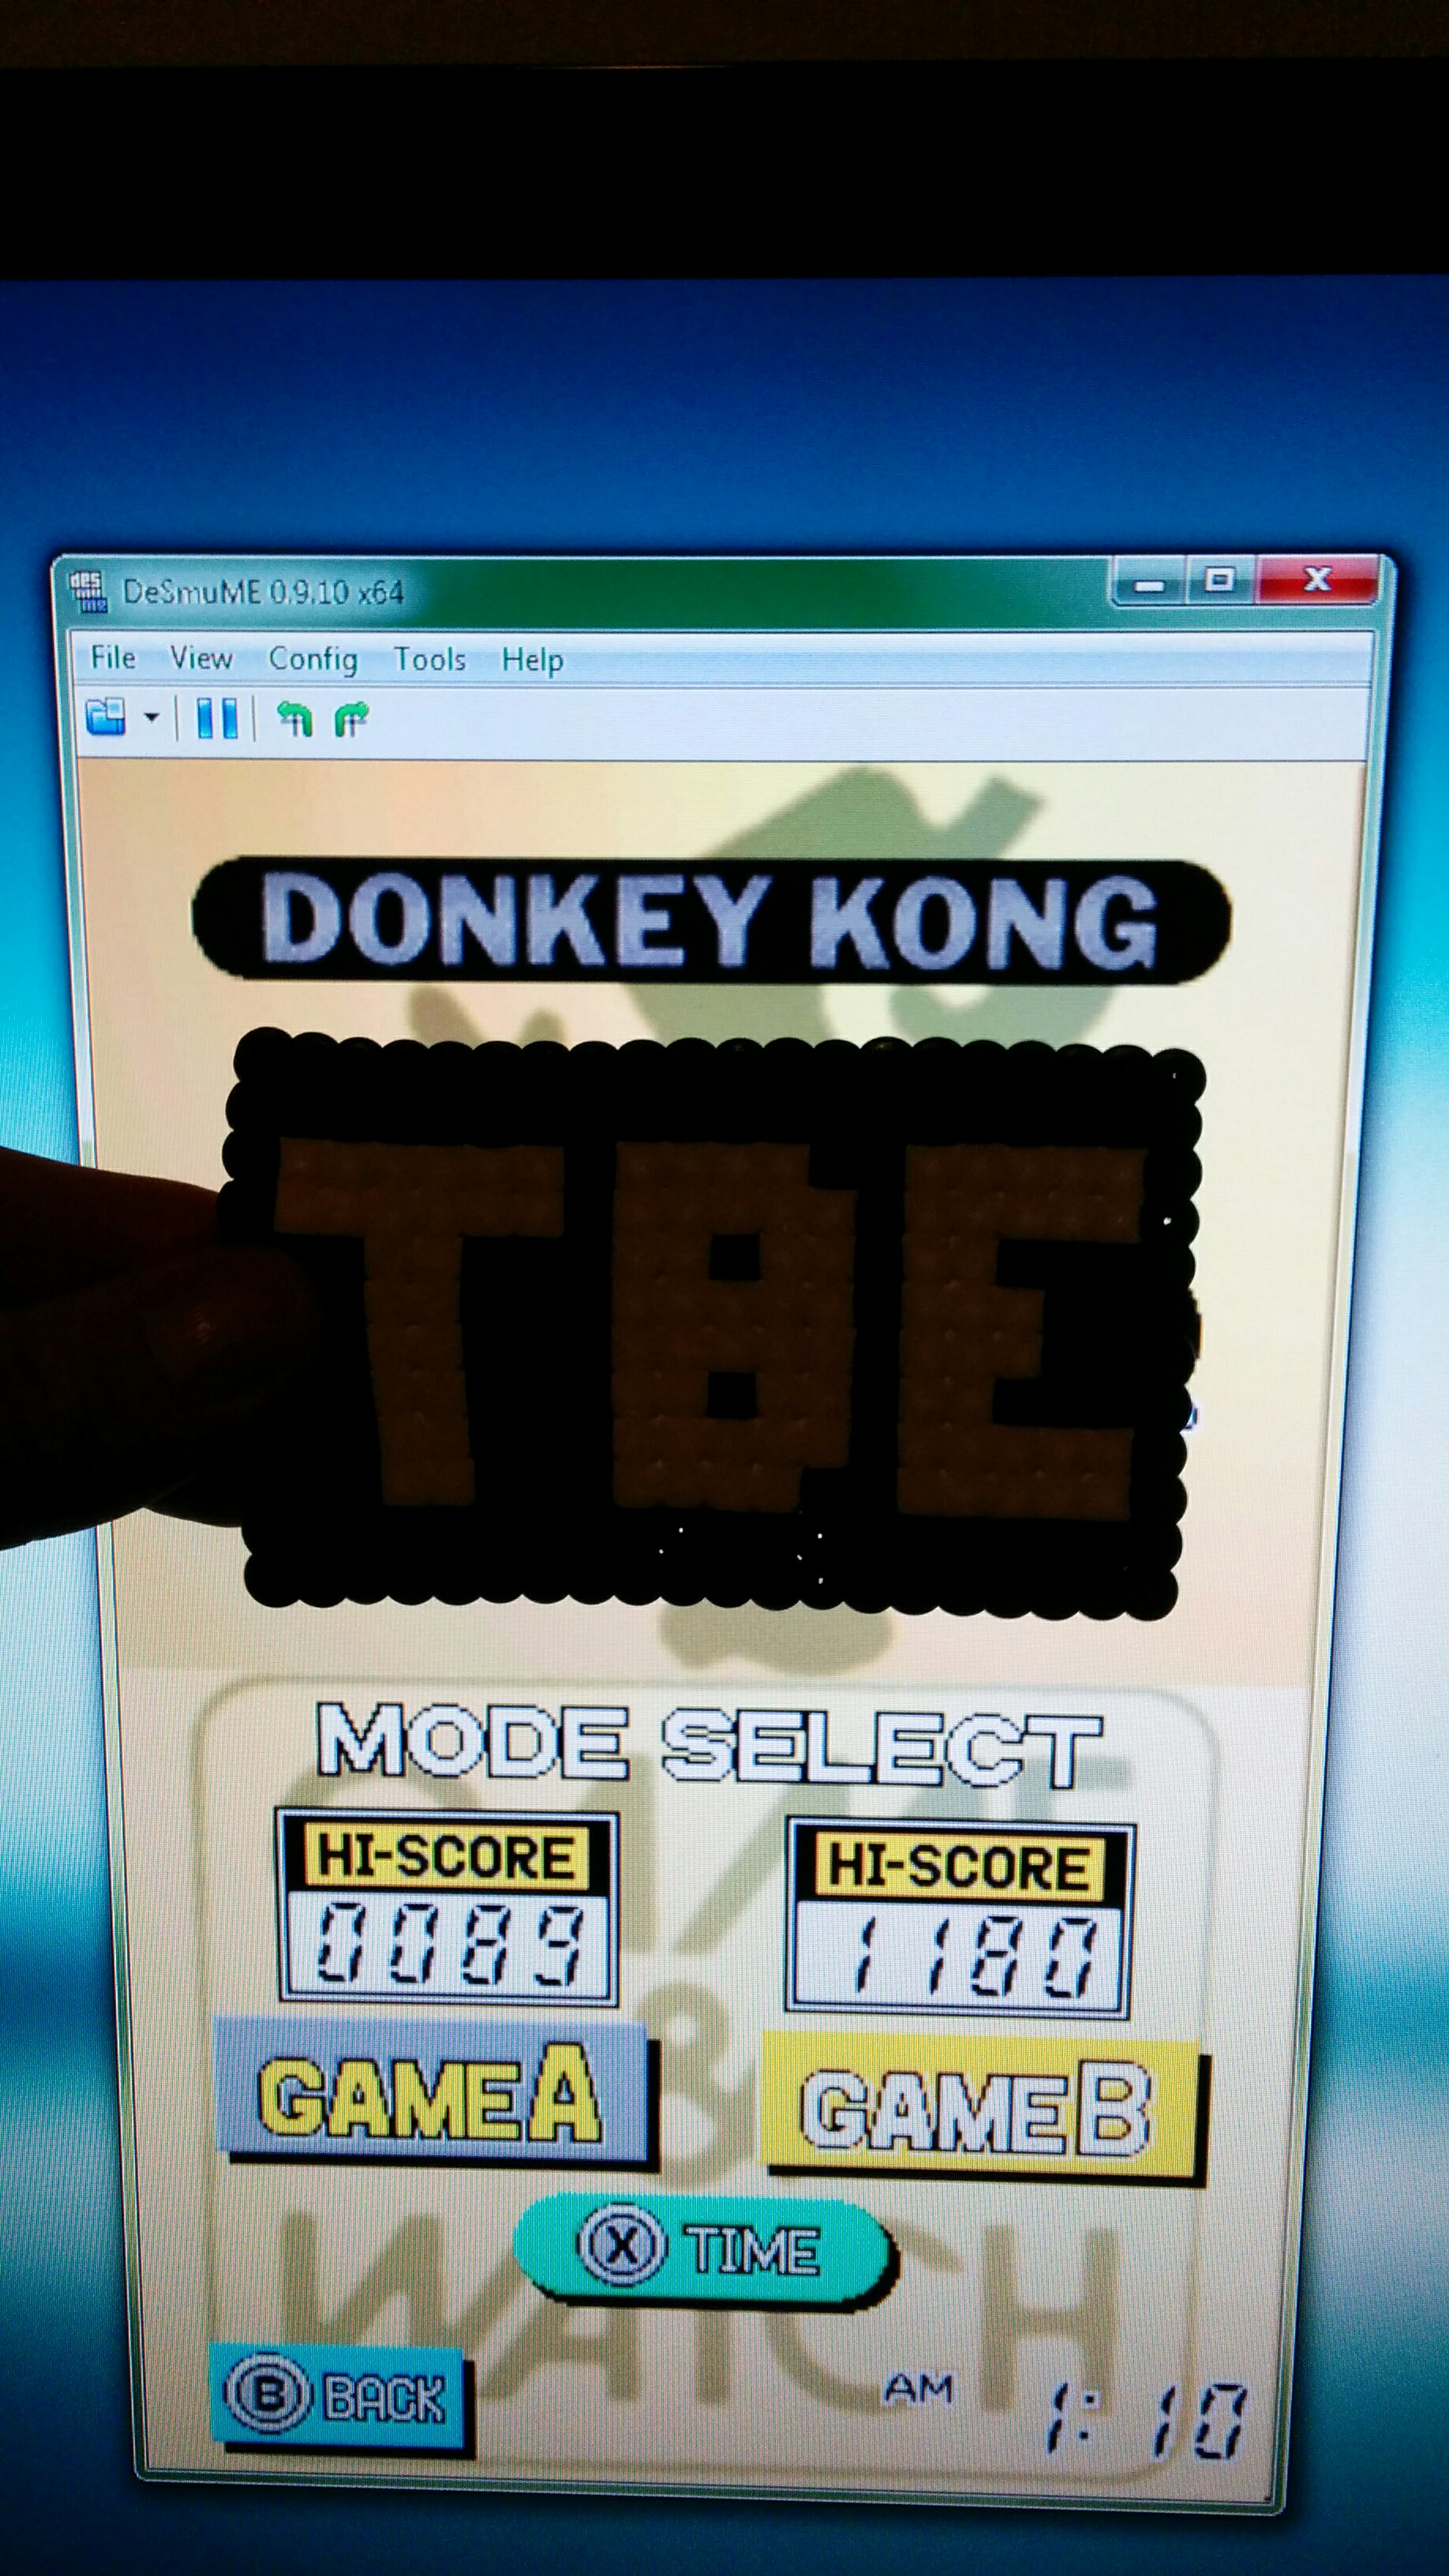 Sixx: Game & Watch Collection: Donkey Kong [Game B] (Nintendo DS Emulated) 1,180 points on 2014-09-25 18:28:58